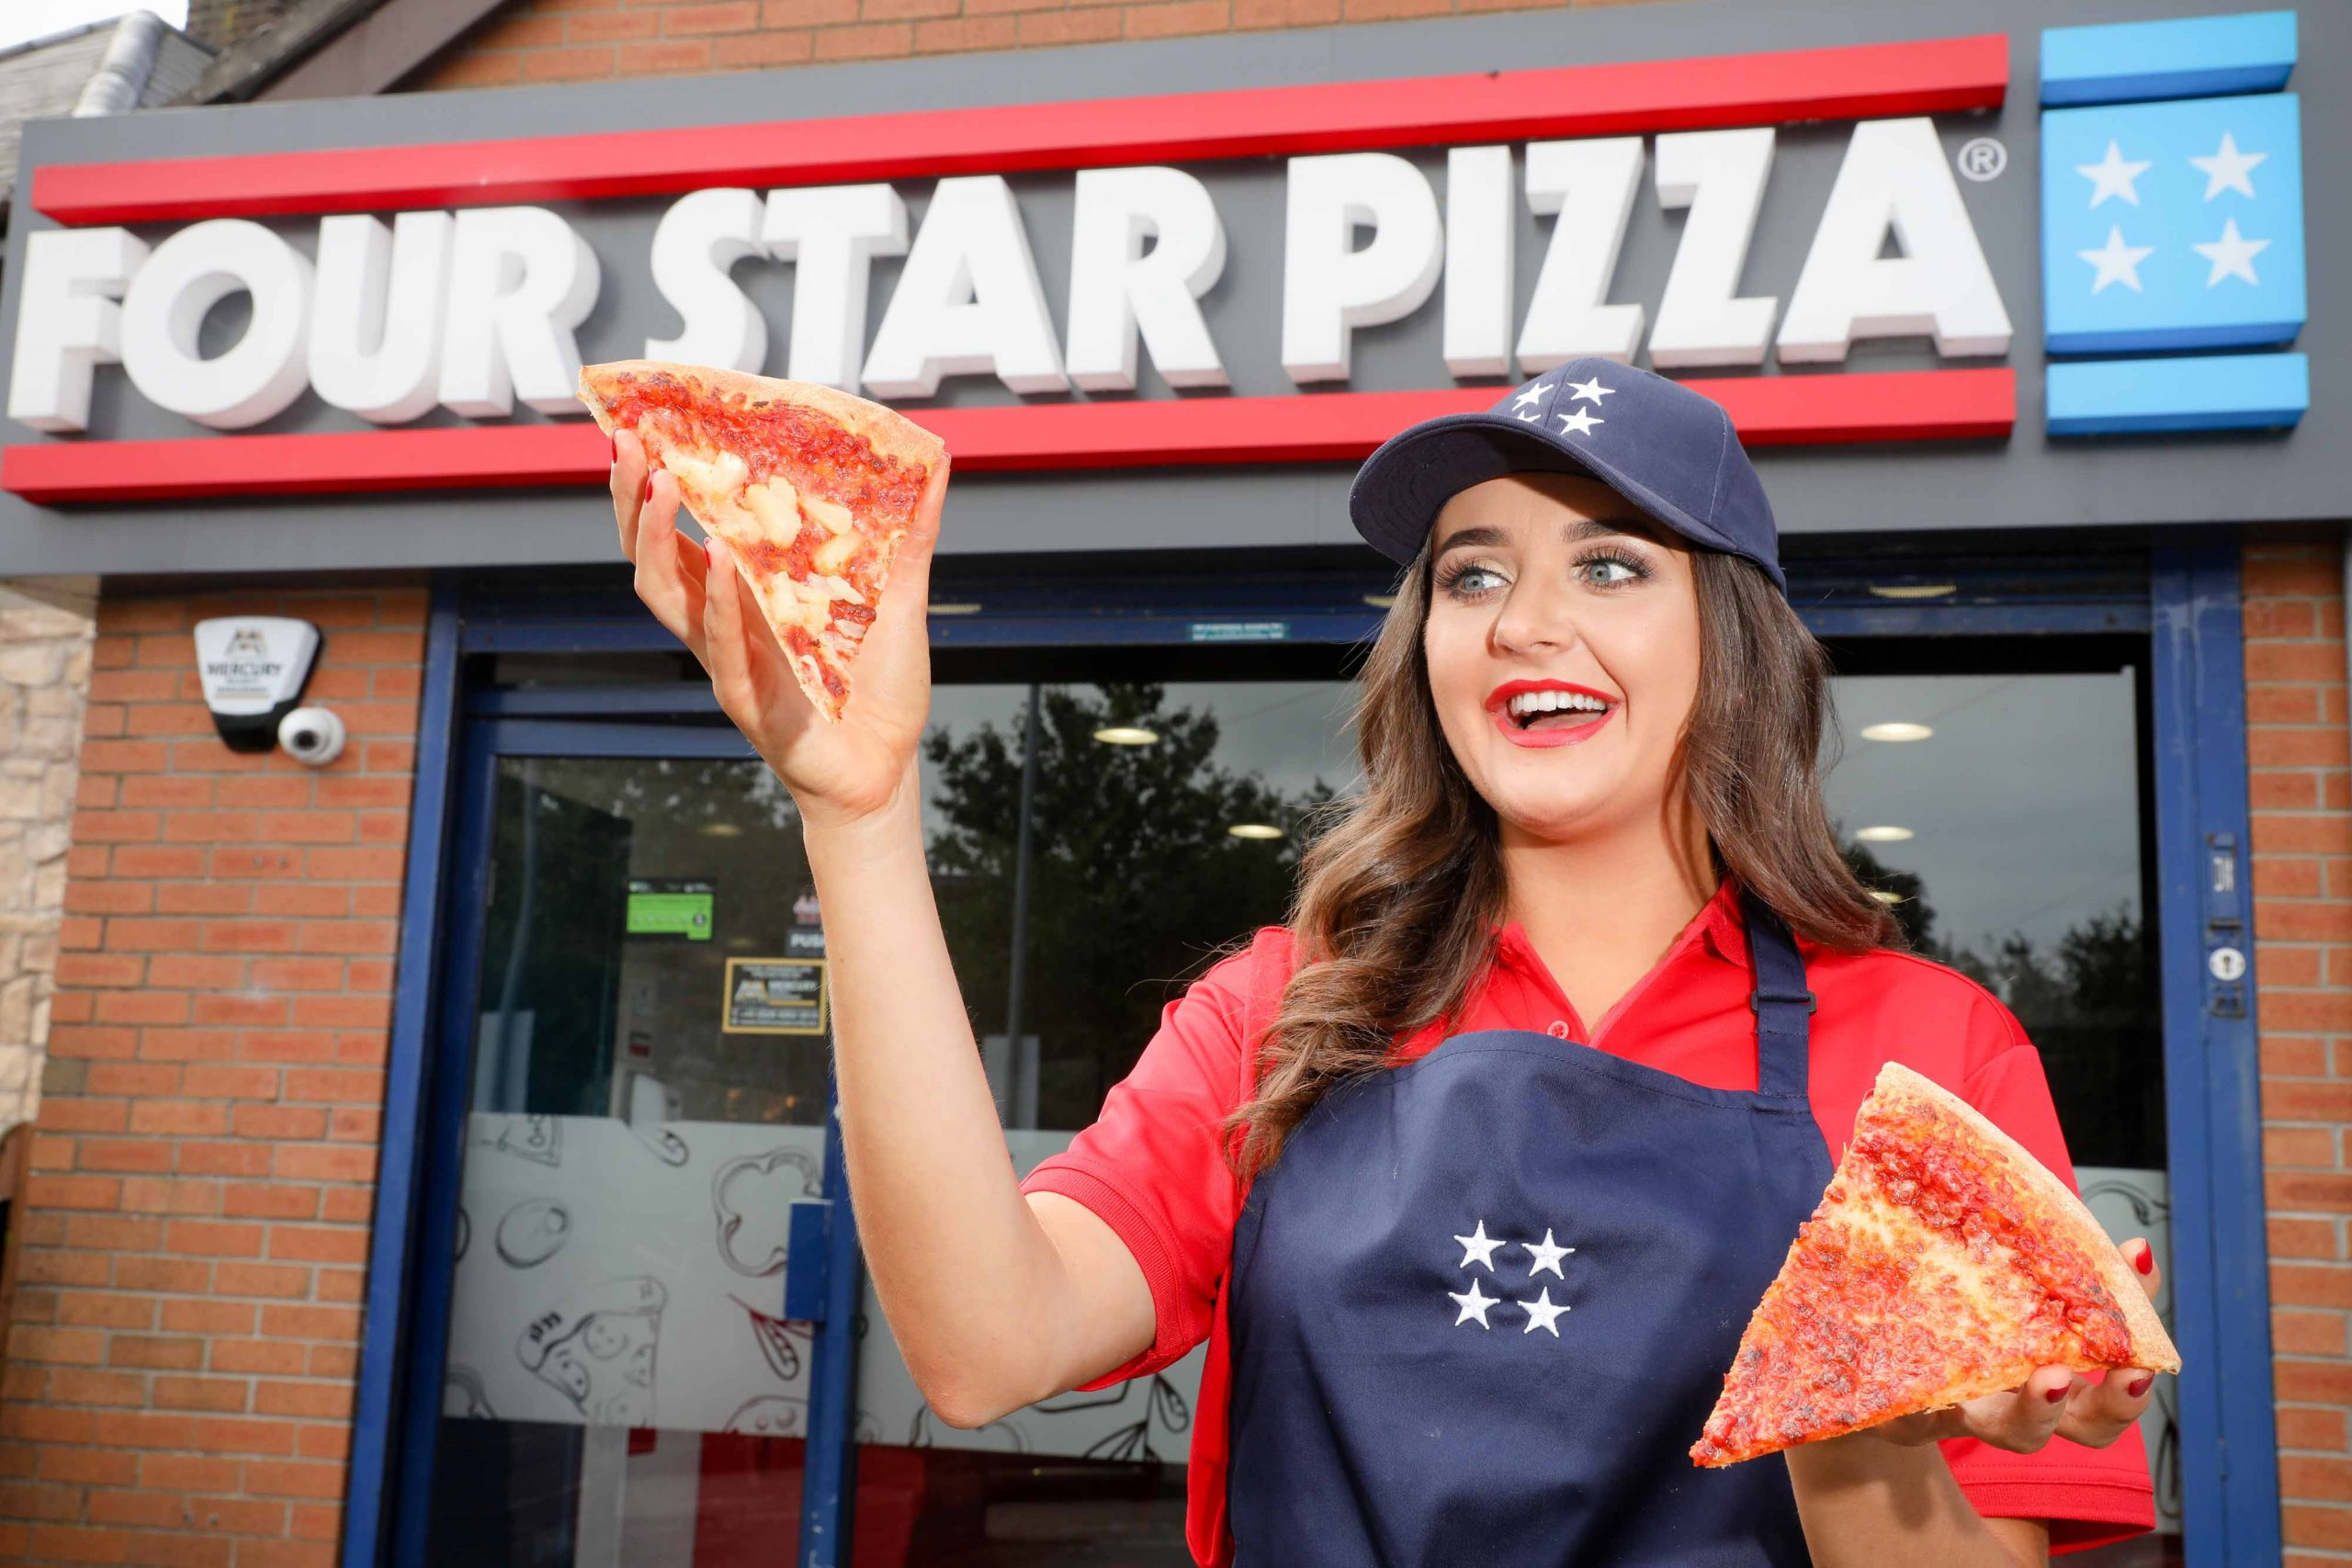 Four Star Pizza carries out 'Pizza Border Poll' ahead of National Pineapple Day